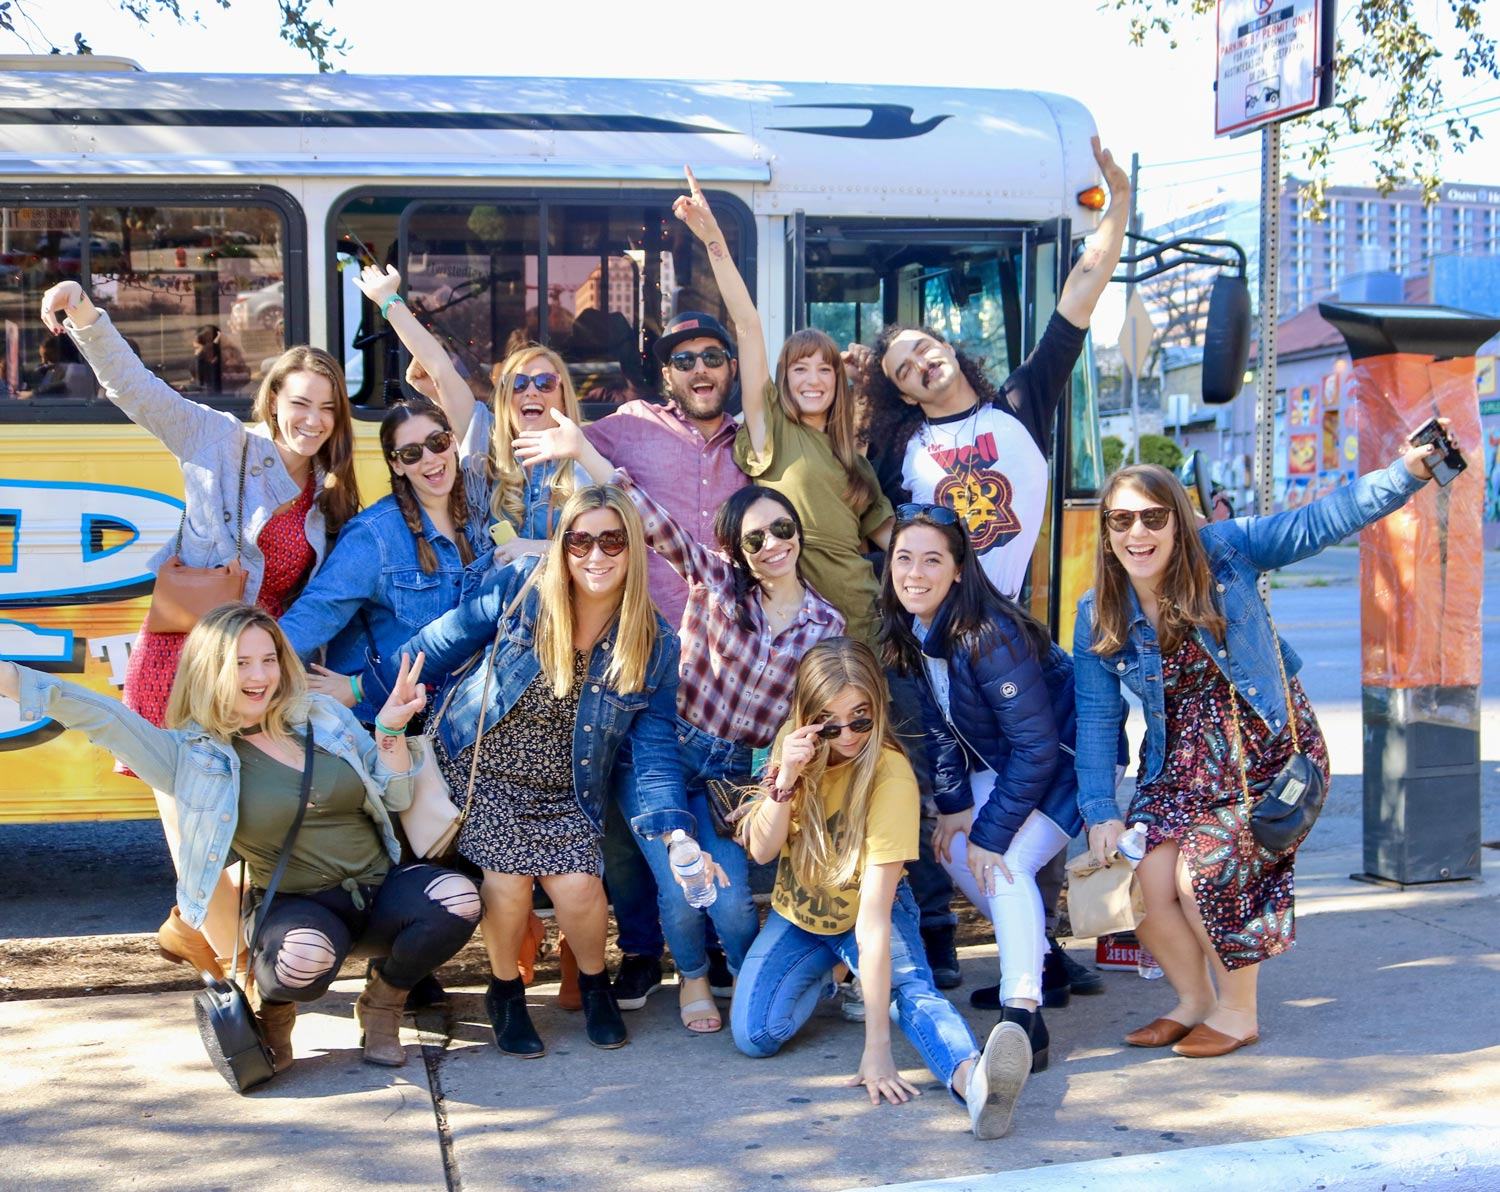 Group of friends strike a silly and festive pose in front of a decorated school bus